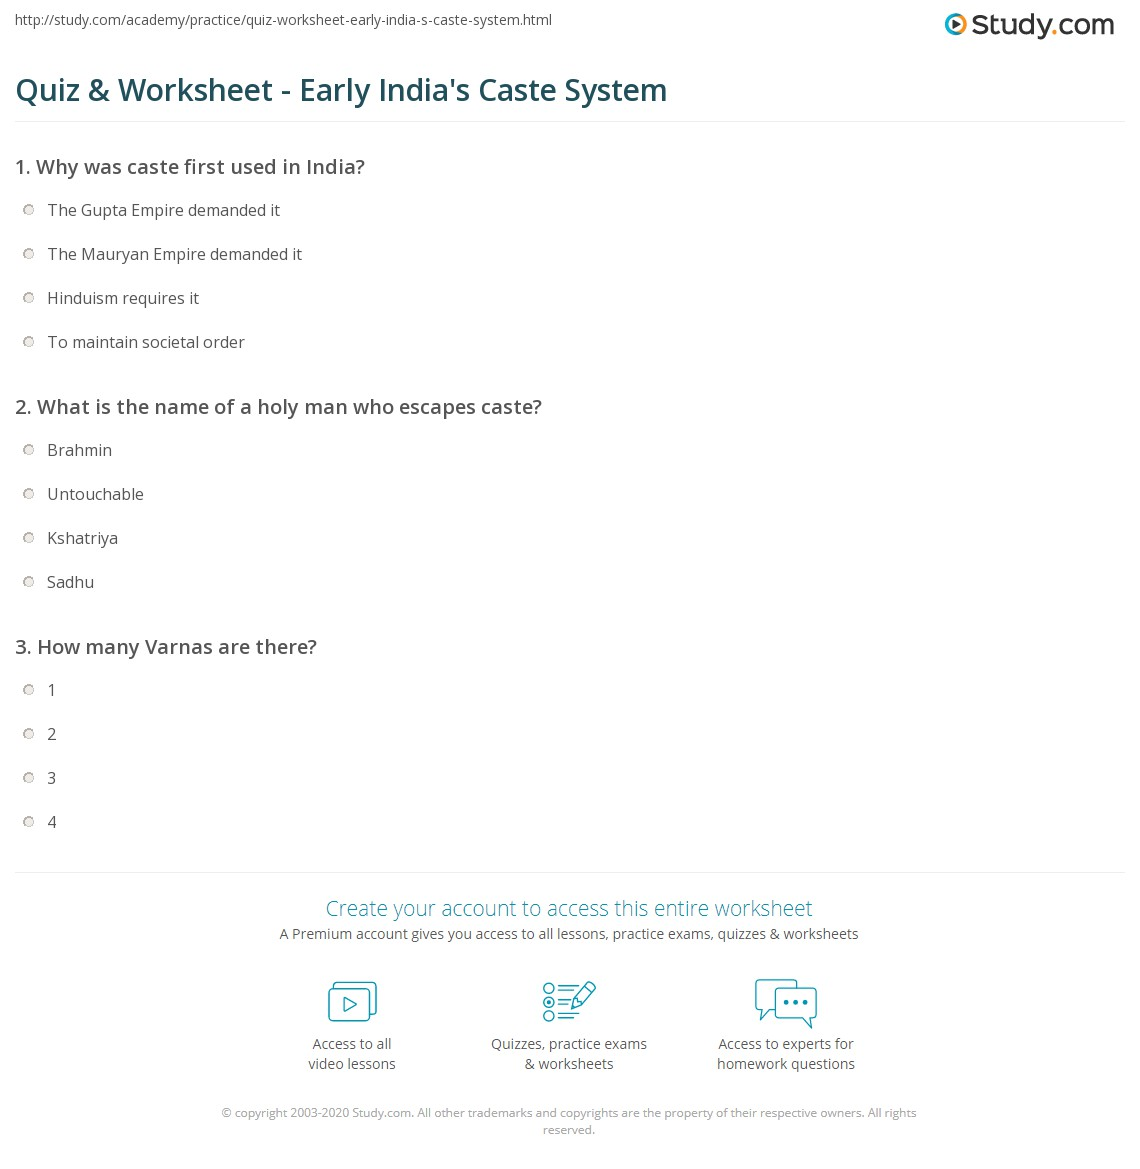 quiz worksheet early india 39 s caste system. Black Bedroom Furniture Sets. Home Design Ideas